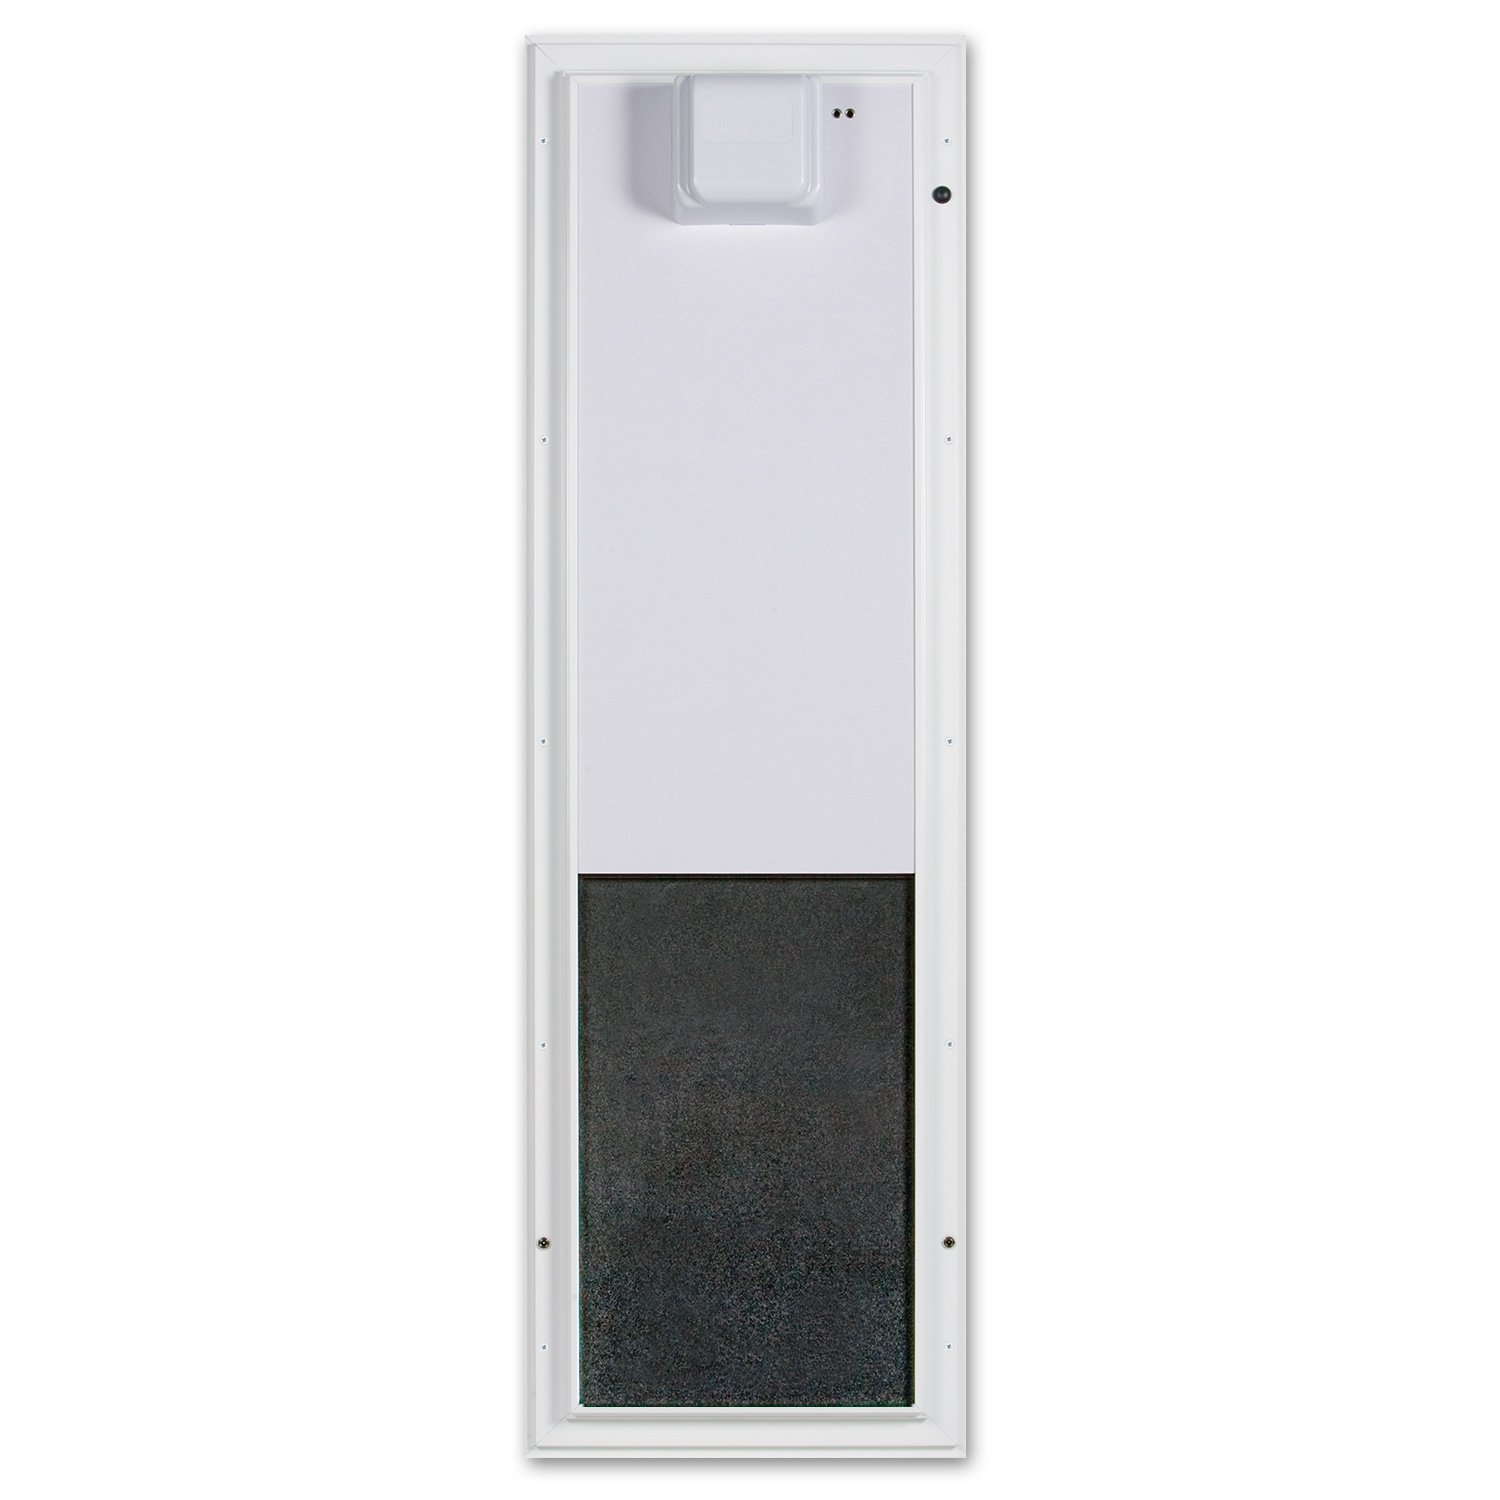 Plexidor Large Door Mount PDE Electronic Pet Door in White